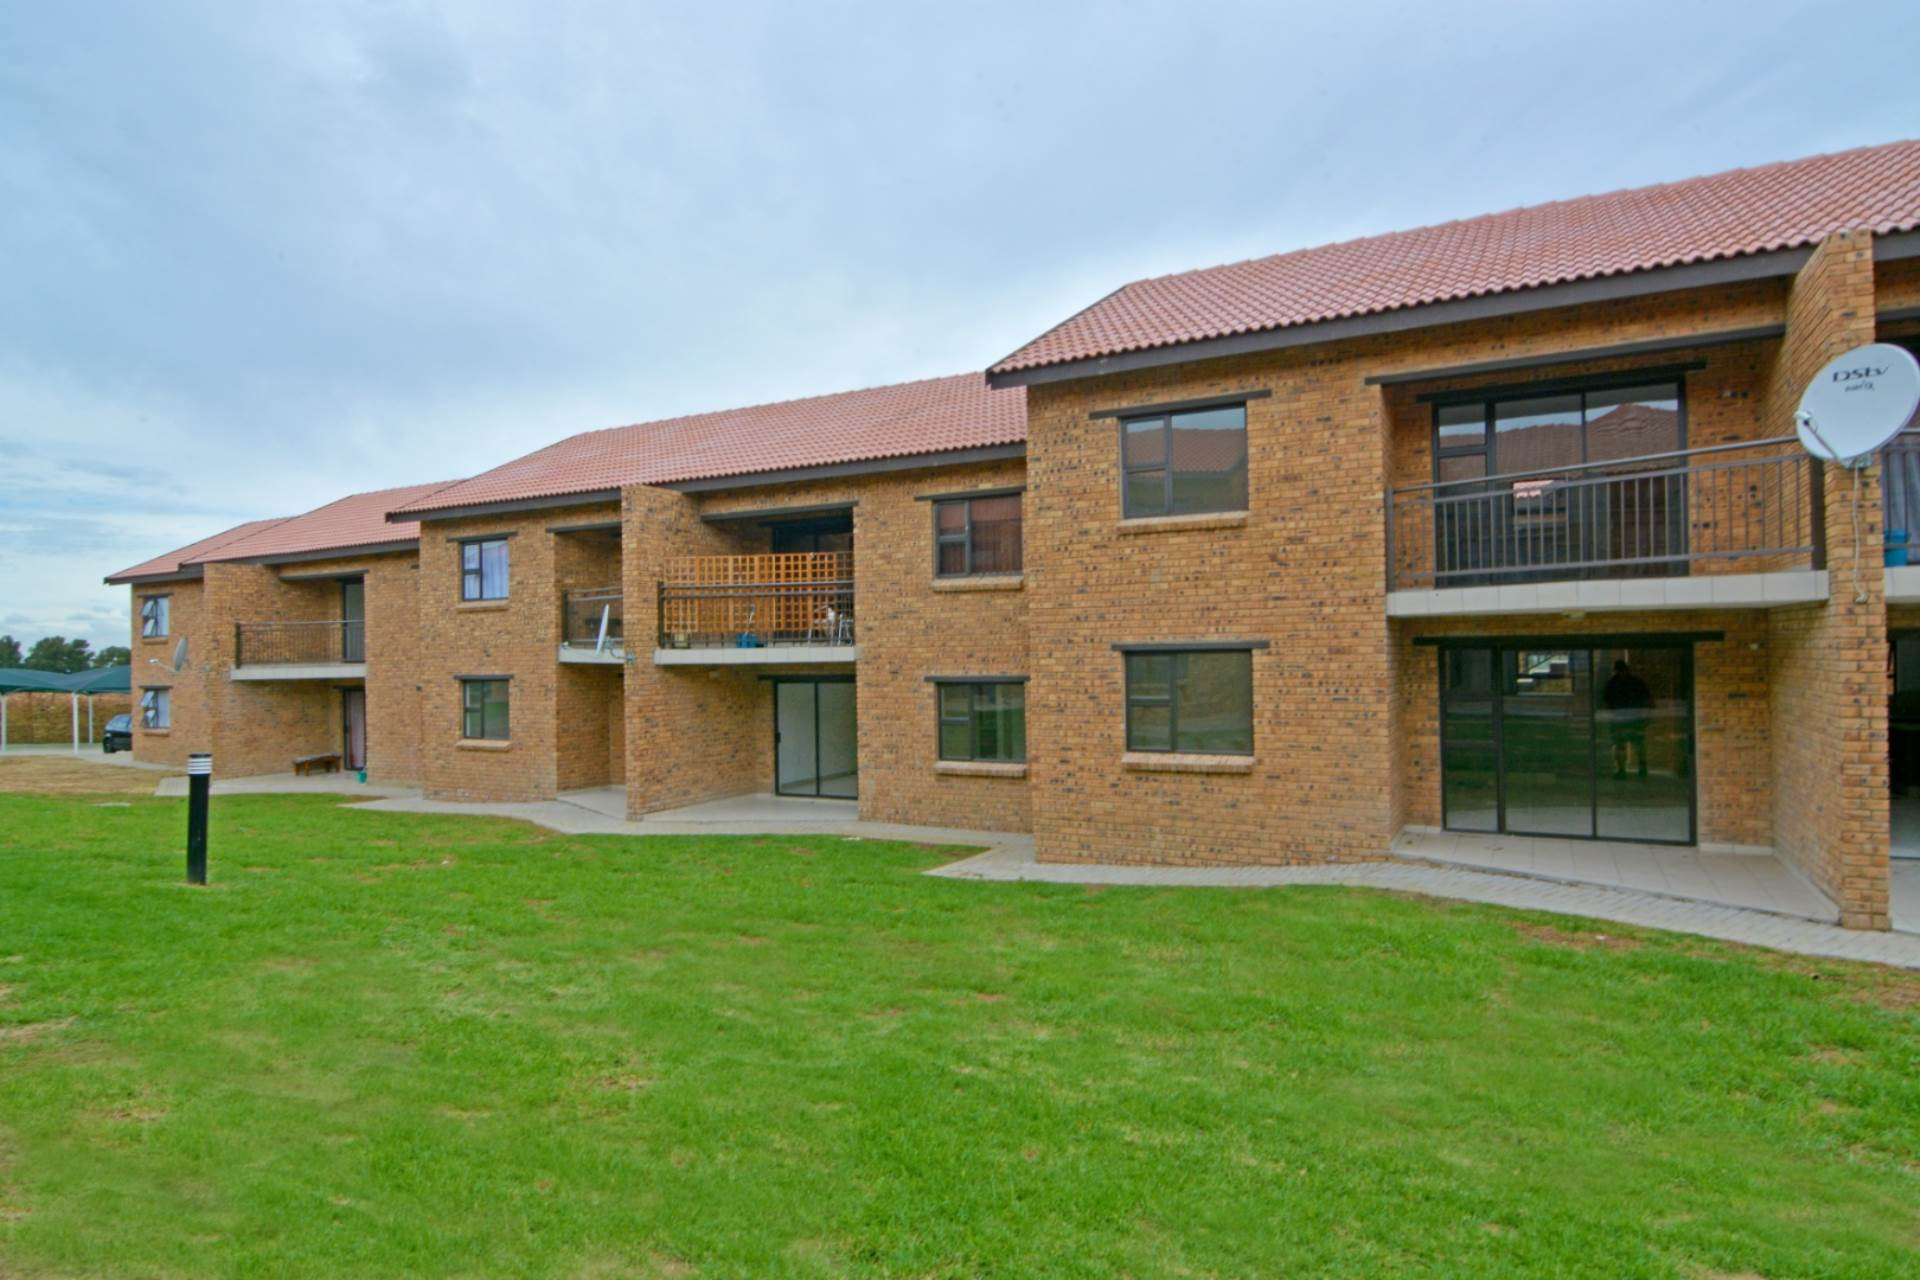 3 BedroomApartment For Sale In Witfield